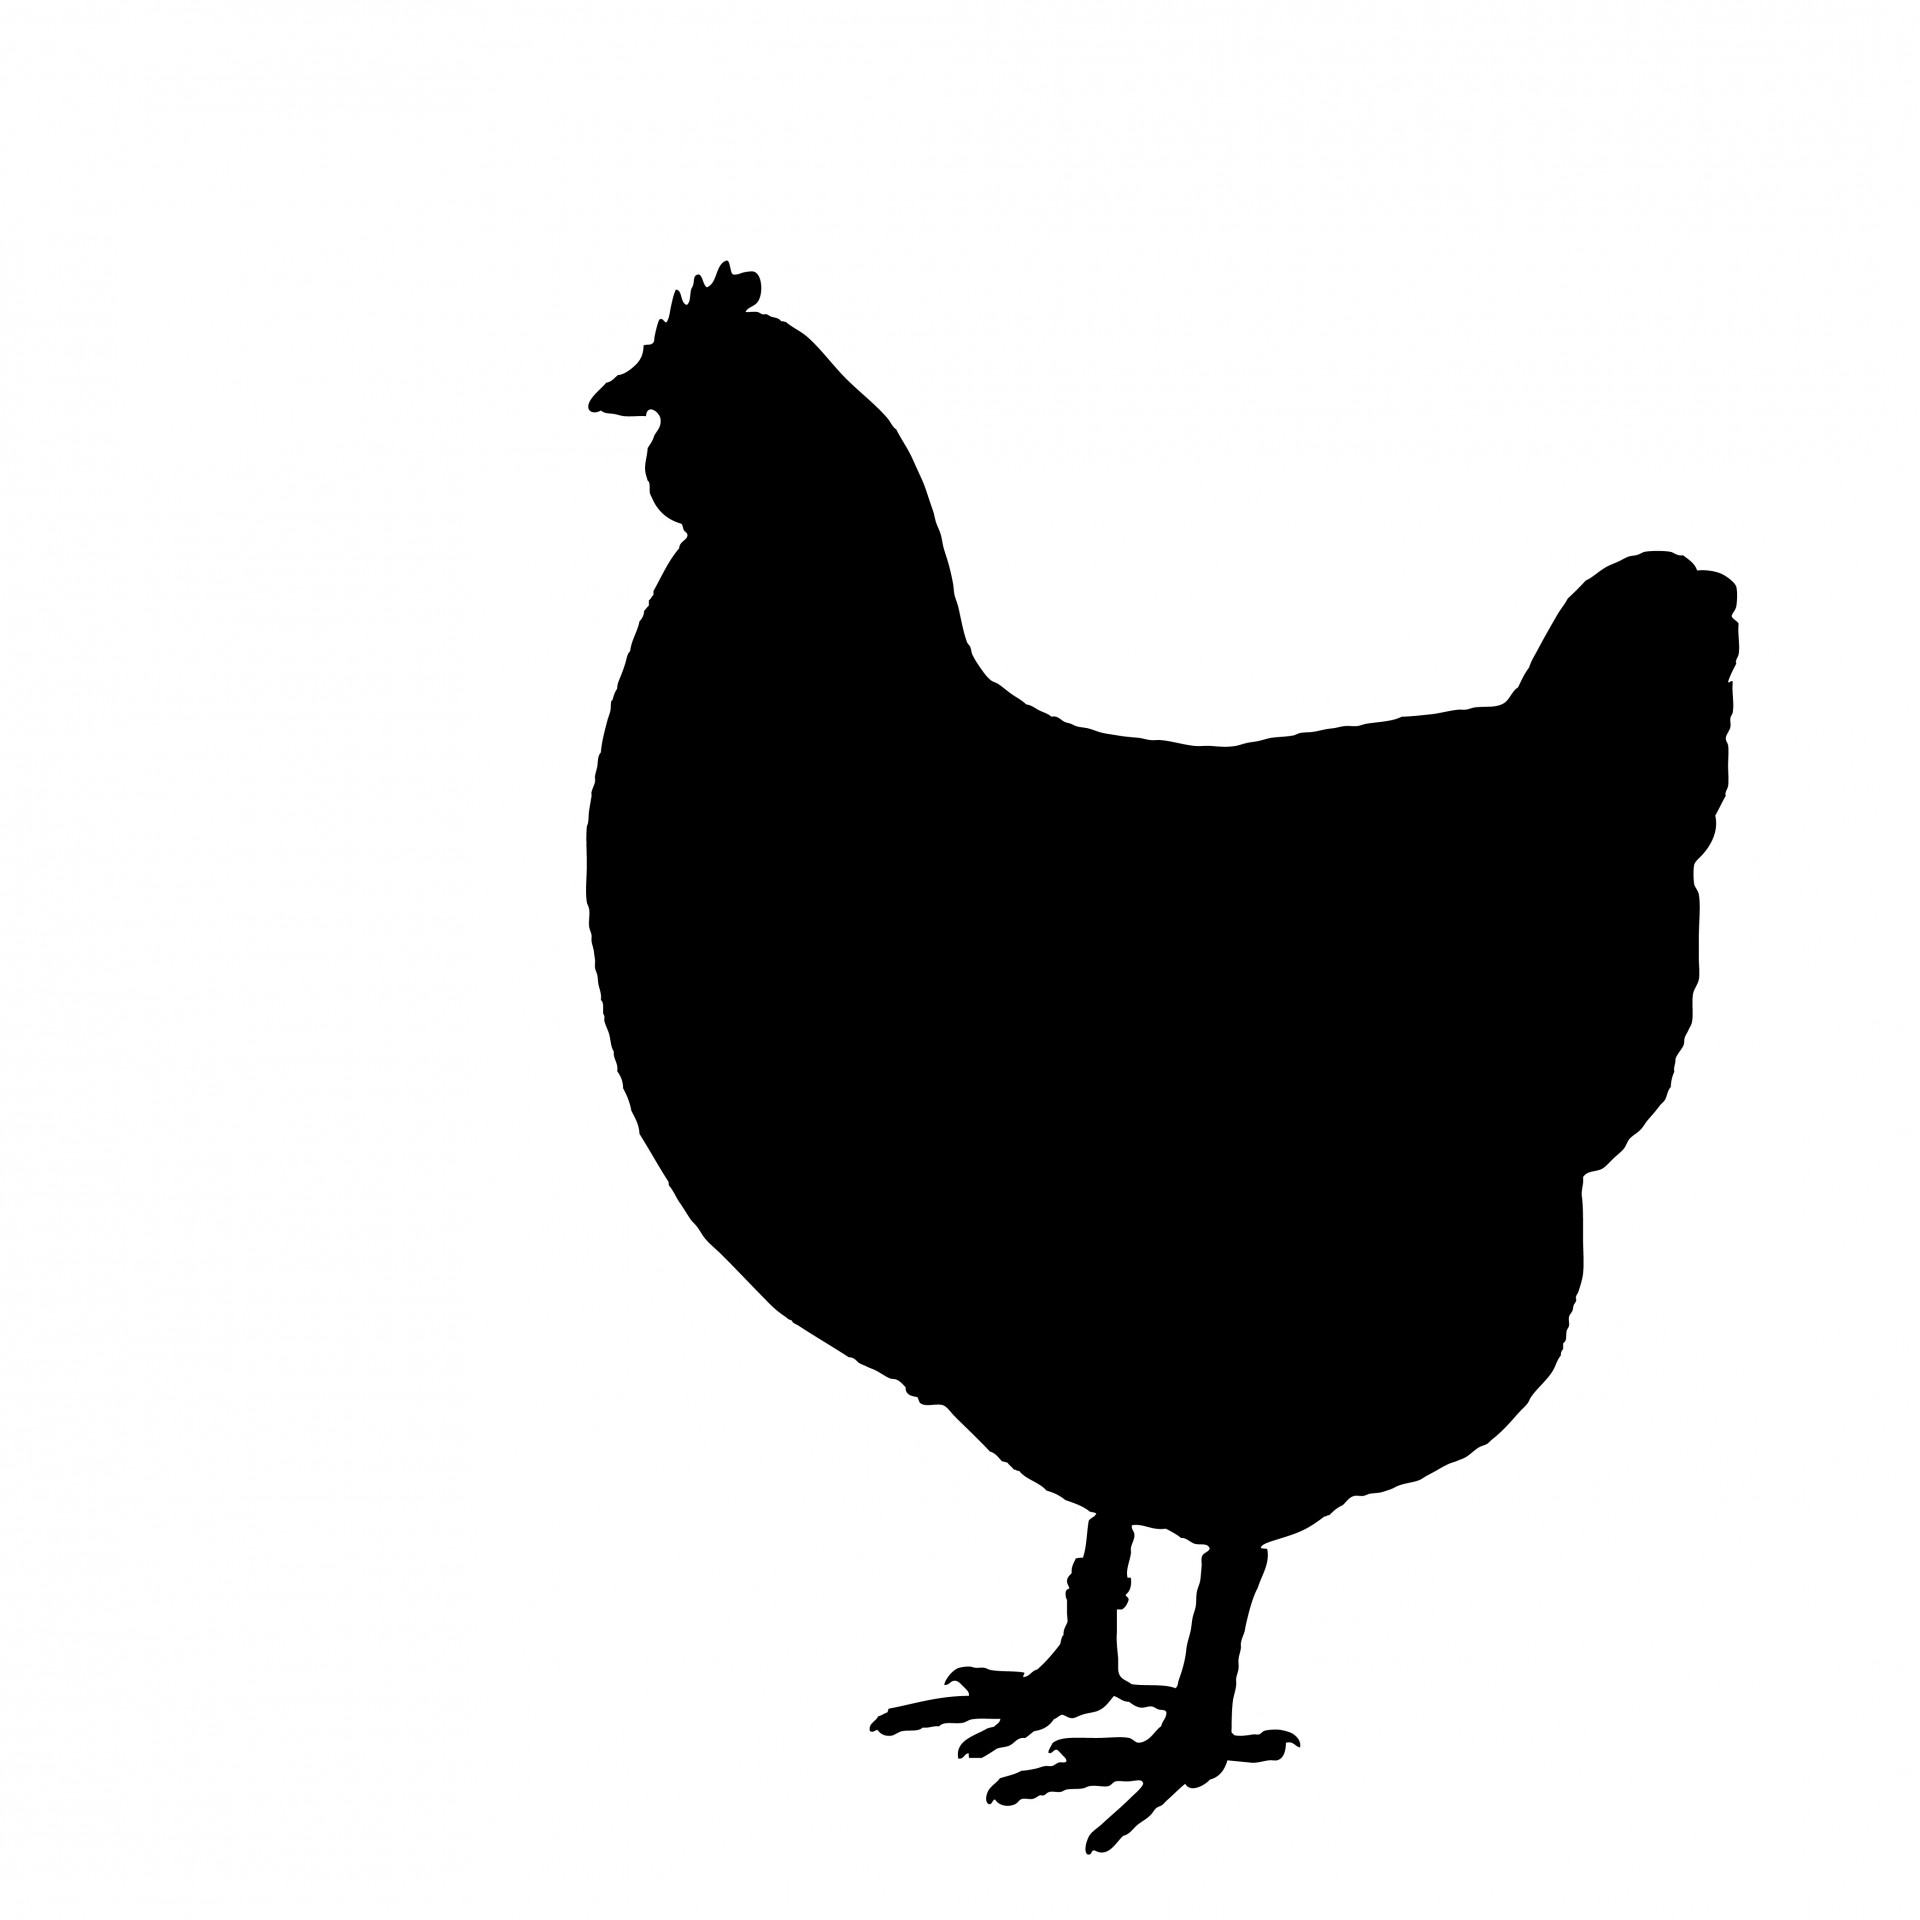 Chicken Silhouette Clipart .. - Chicken Silhouette Clip Art